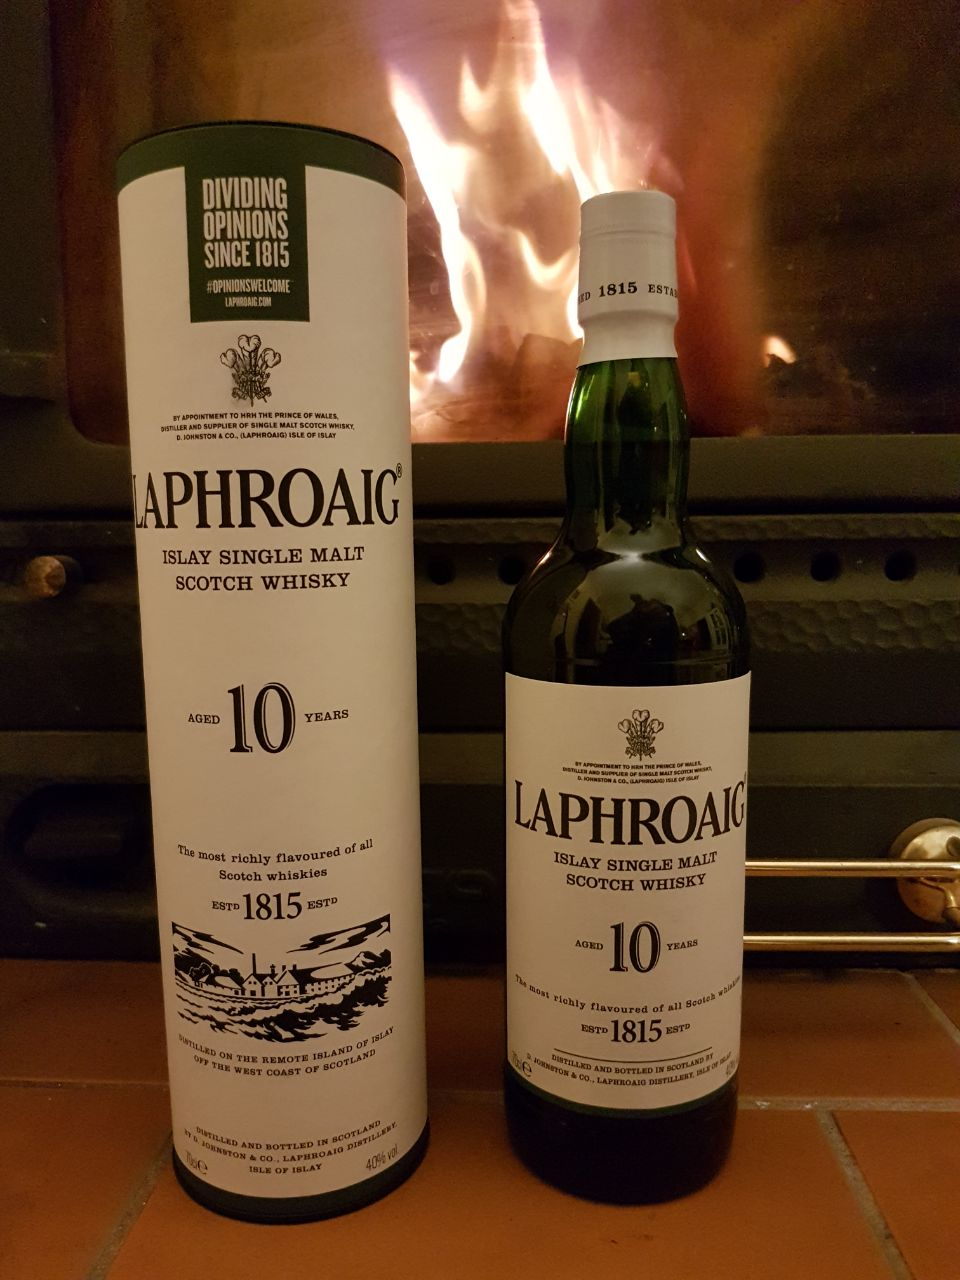 Laphroaig 10 Jahre Islay Single Malt Scotch Whisky